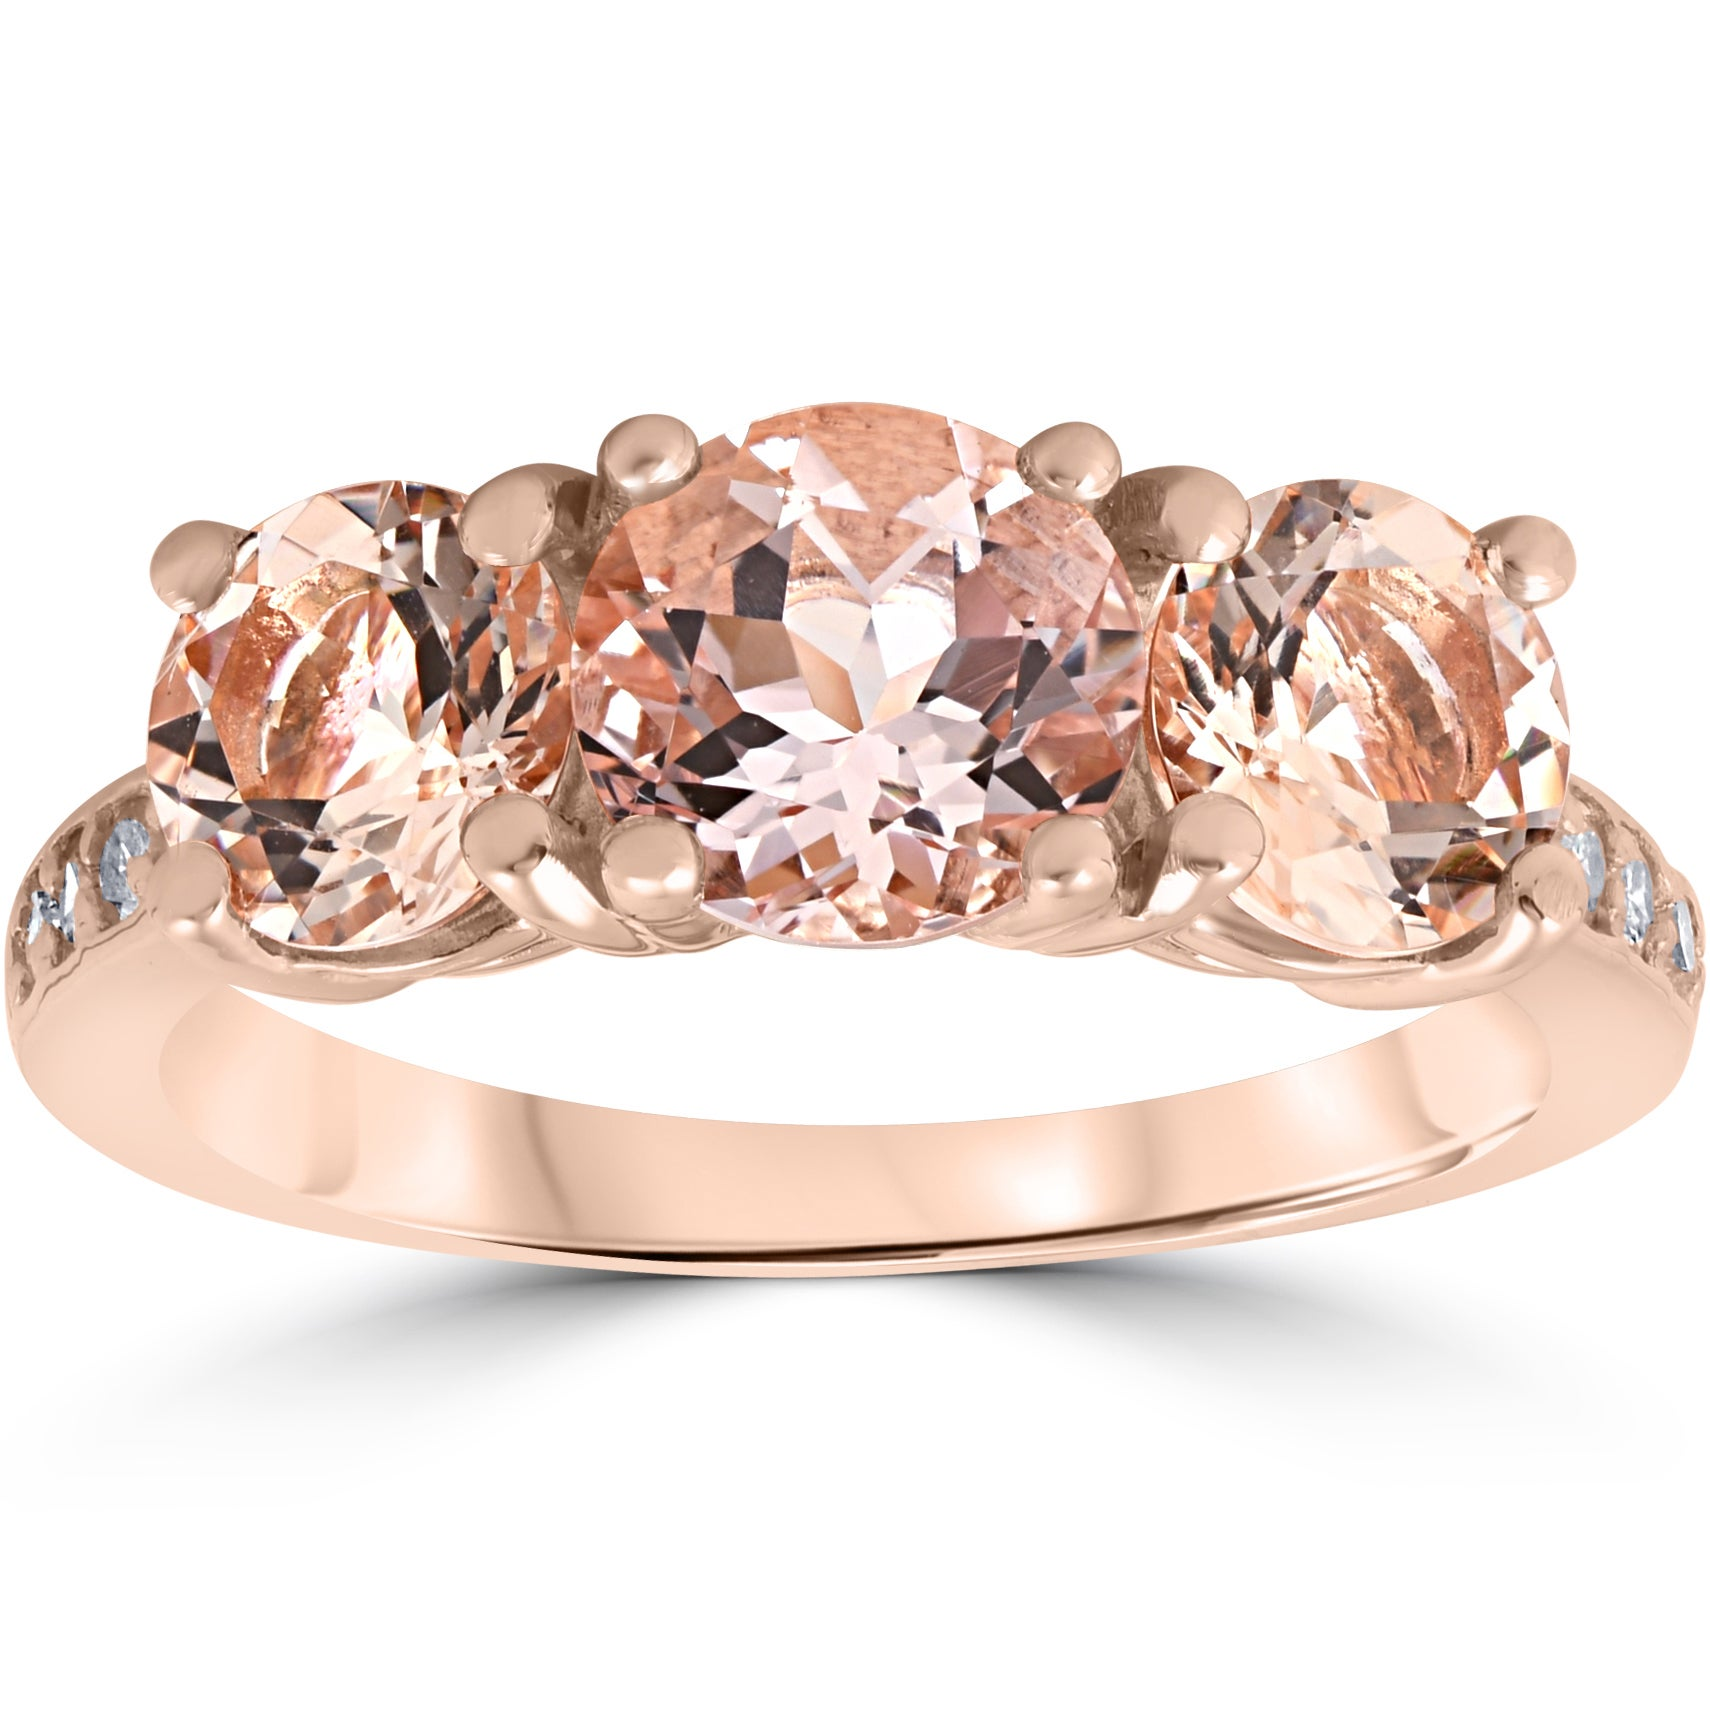 1//20 cttw, 3 Diamond Promise Ring in 10K Pink Gold G-H,I2-I3 Size-9.25